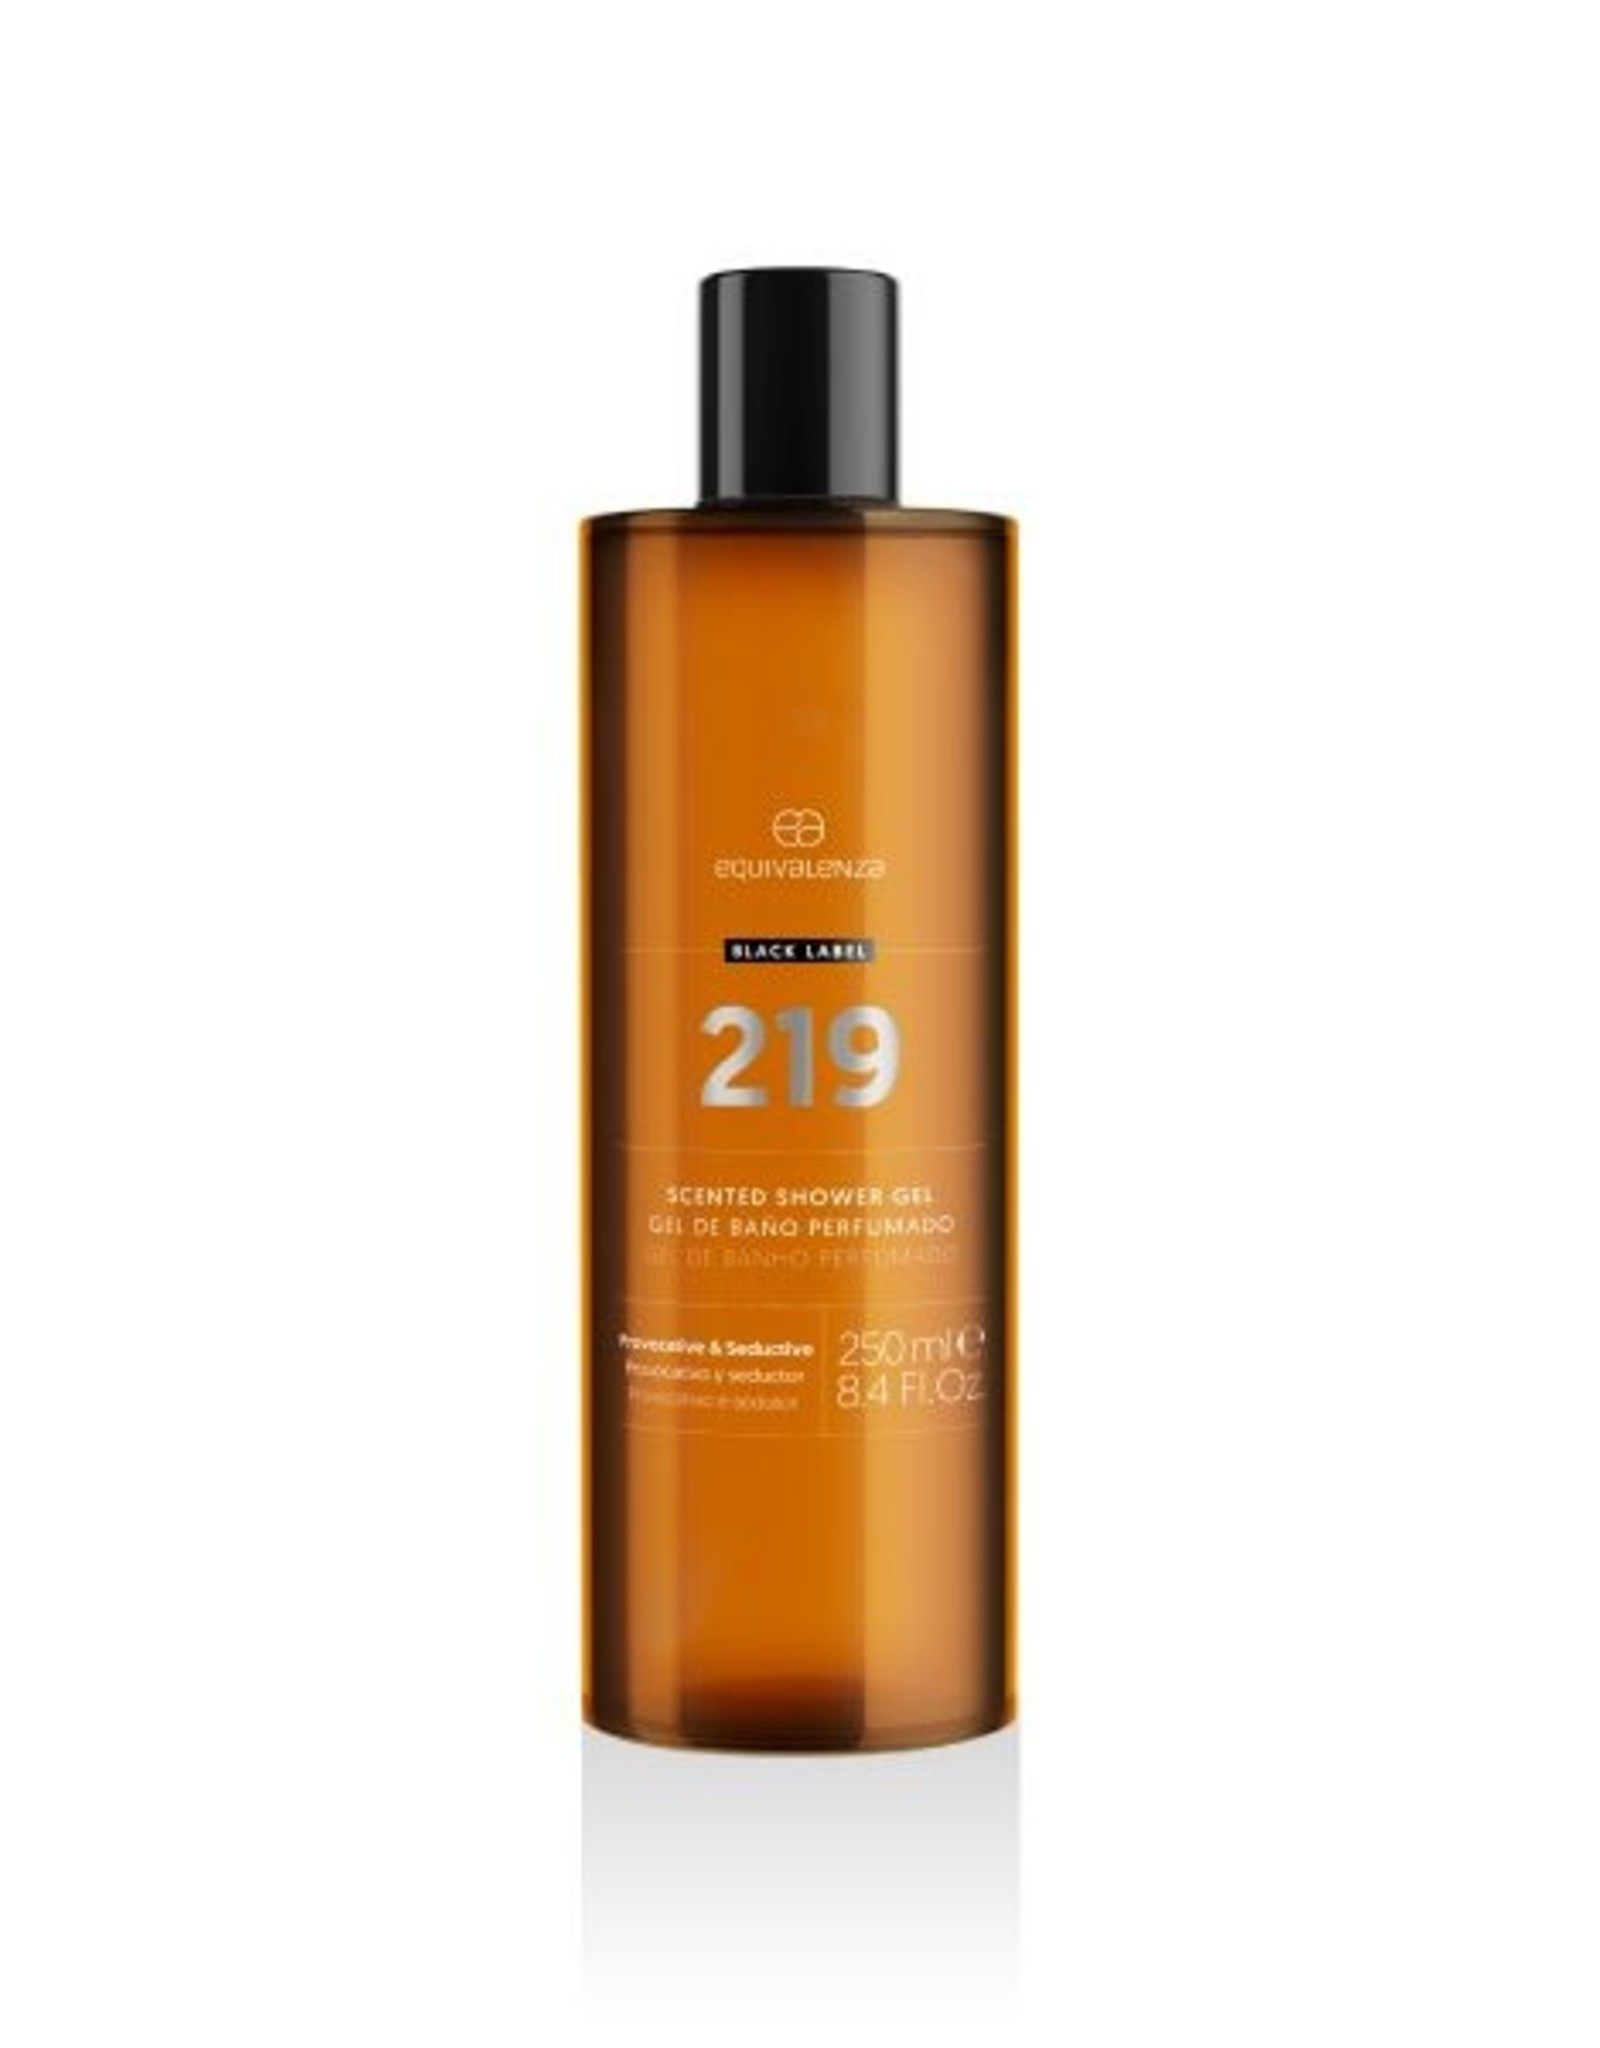 Equivalenza Gel Douche Black Label 219